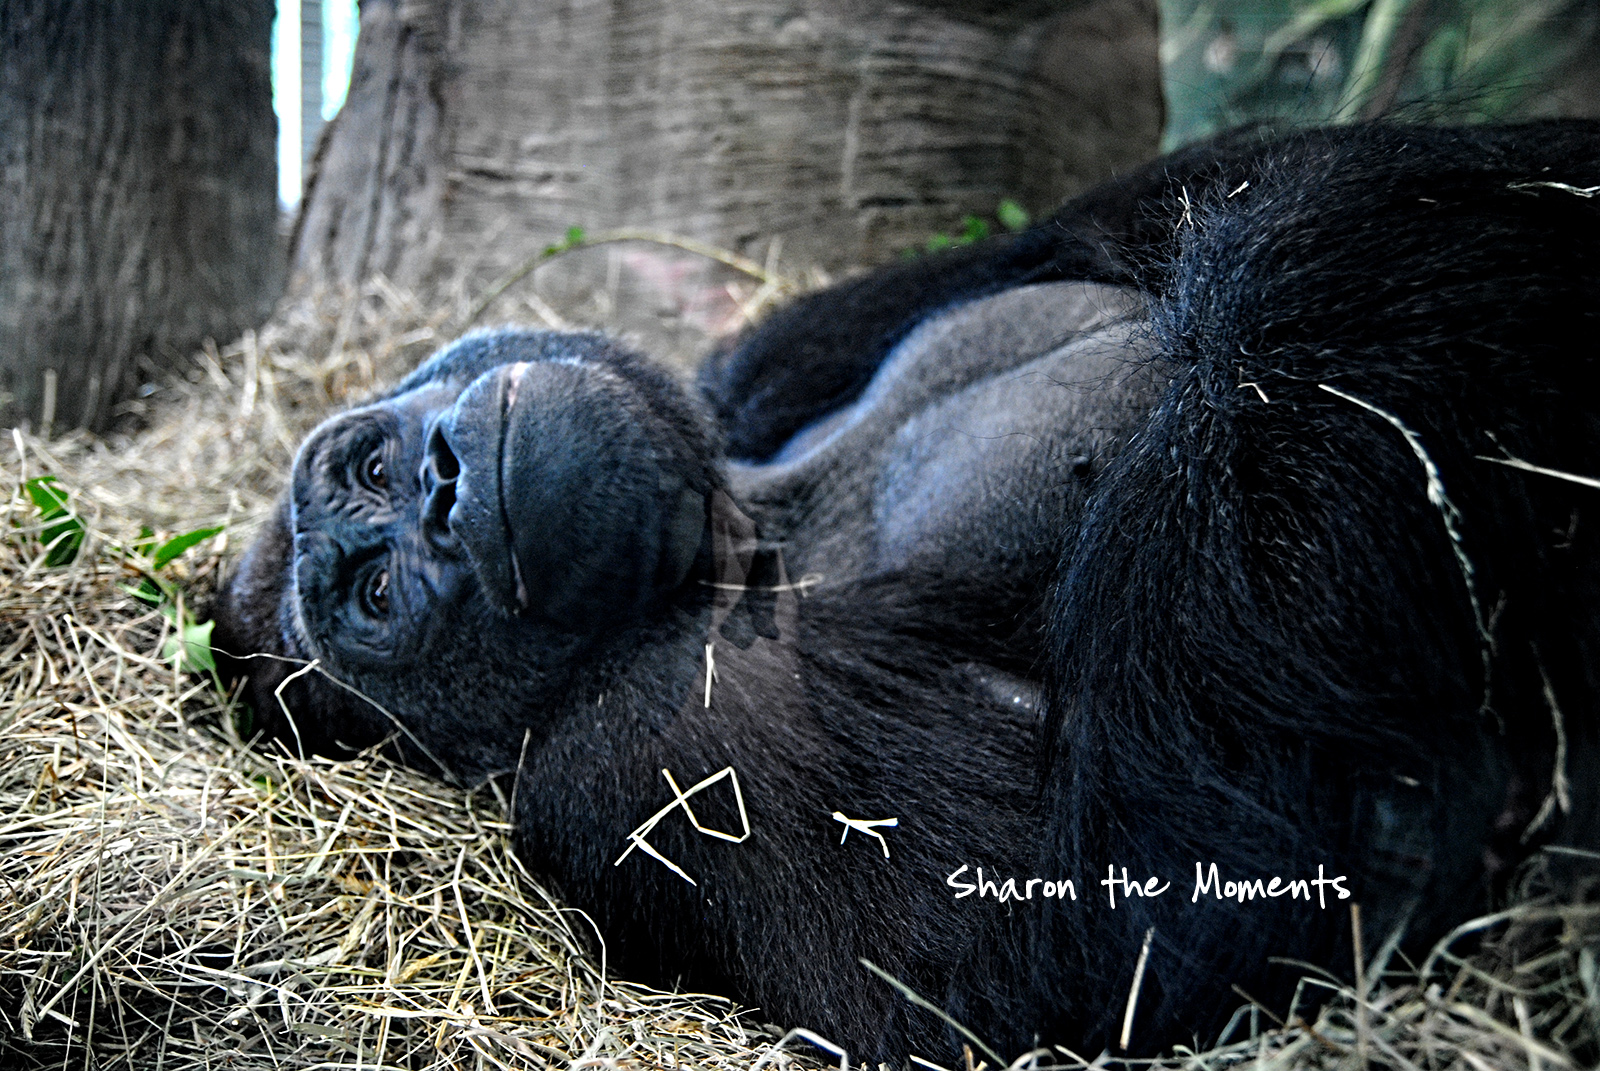 Monday Monday Spring Happy Mothers Day Columbus Zoo|Sharon the Moments blog